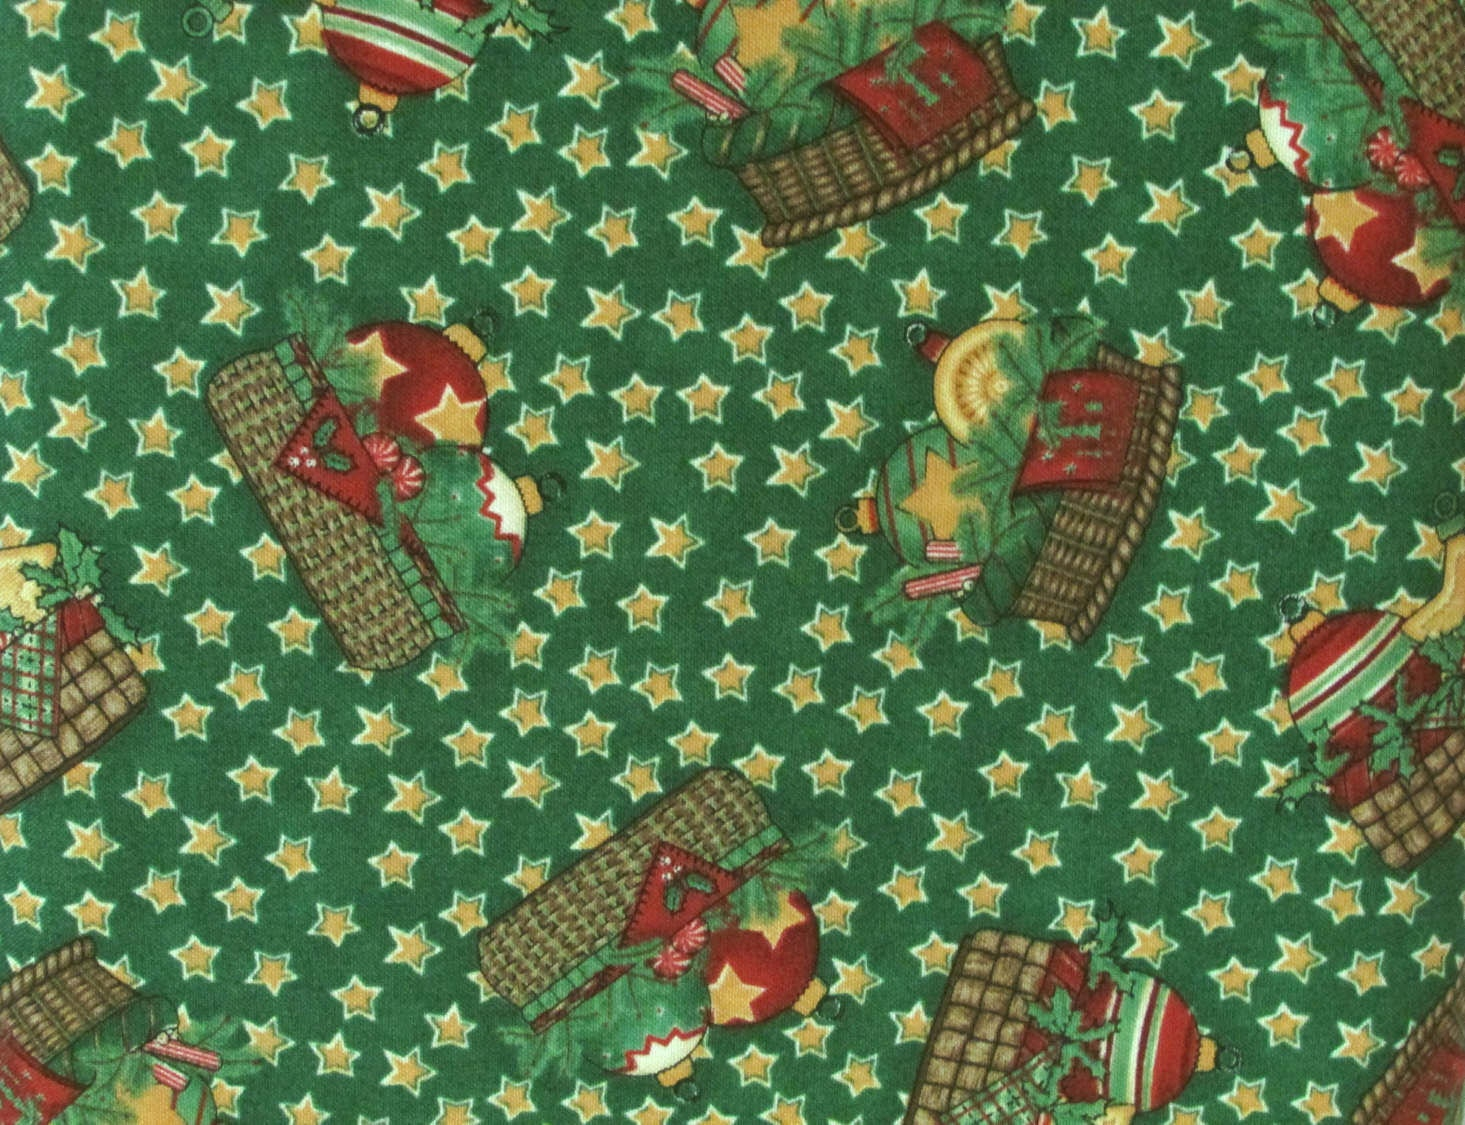 Sewing fabric cotton quilting quilting fabric sewing for Cotton quilting fabric